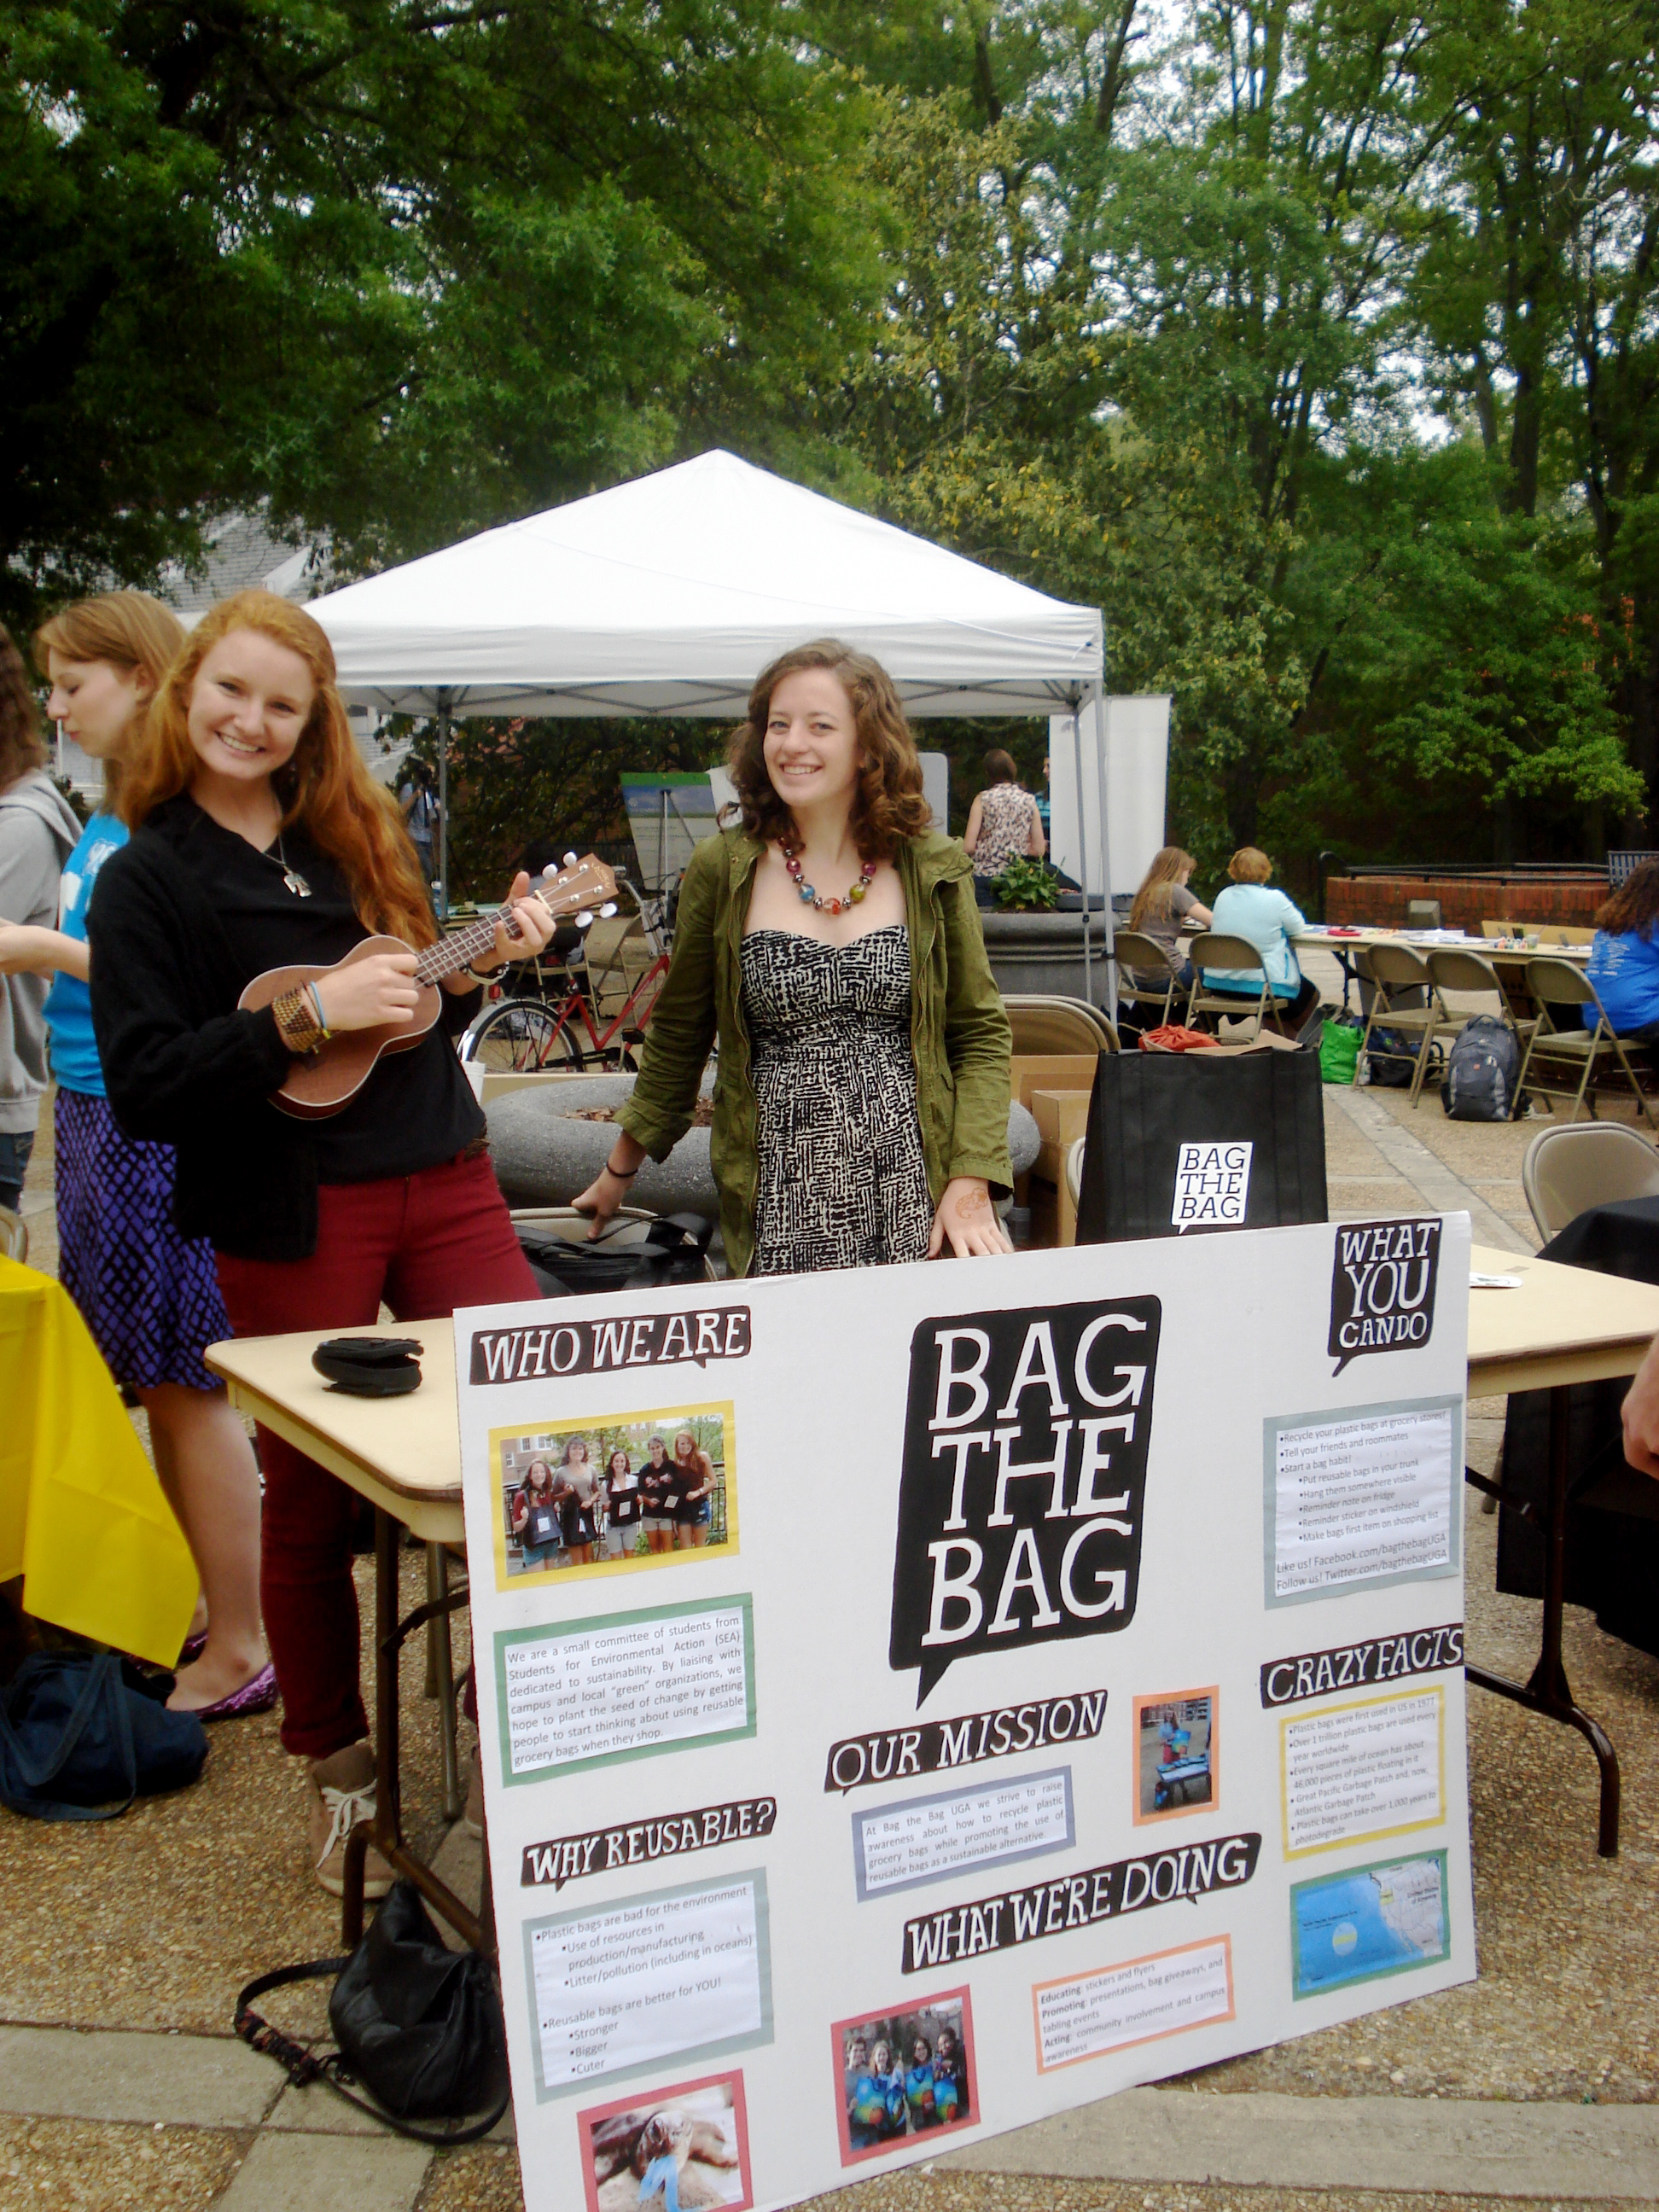 Bag the bag tabling